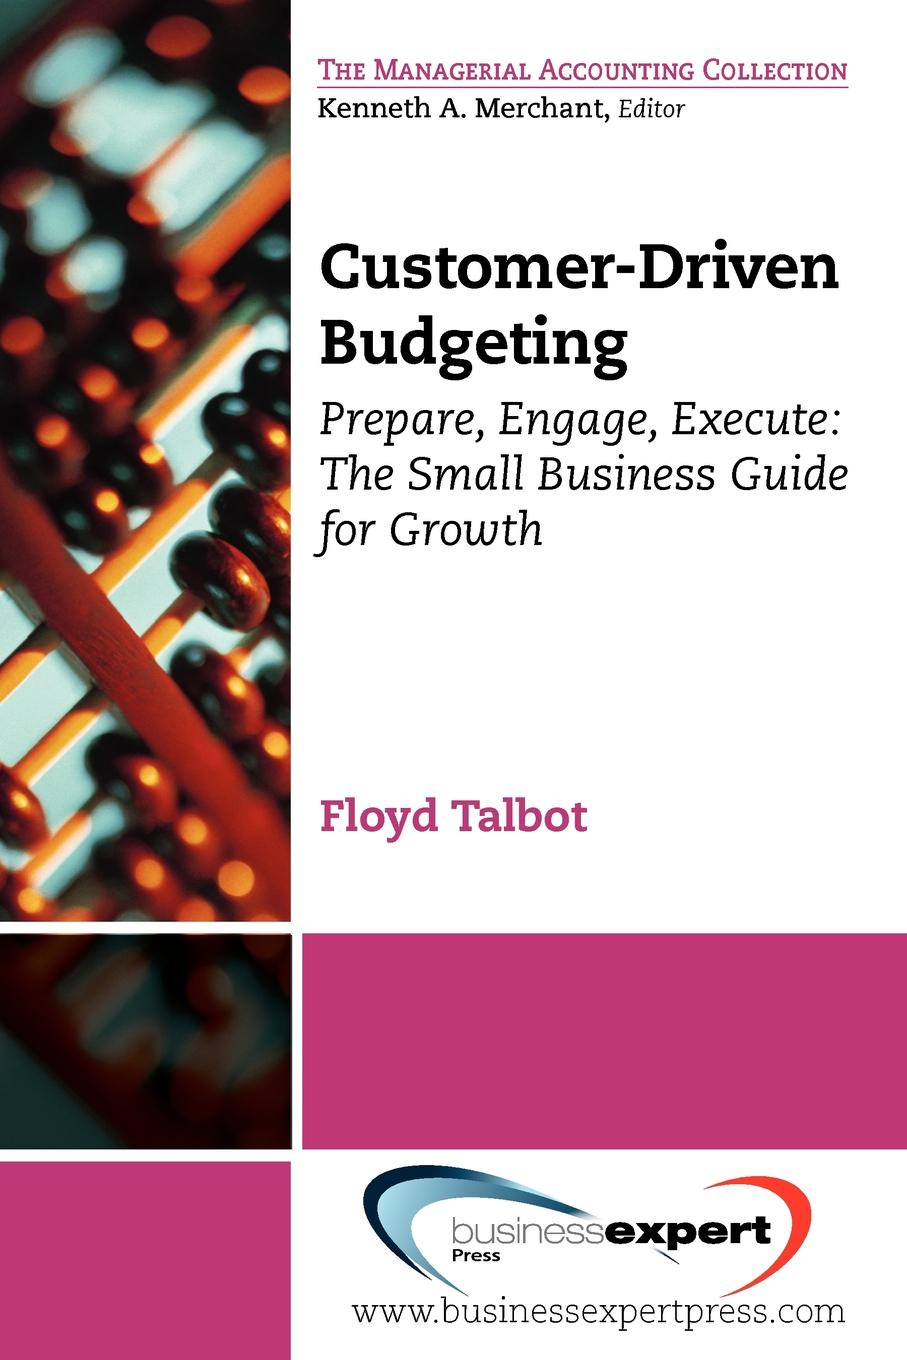 Floyd Talbot. Customer-Driven Budgeting. Prepare, Engage, Execute: The Small Business Guide for Growth